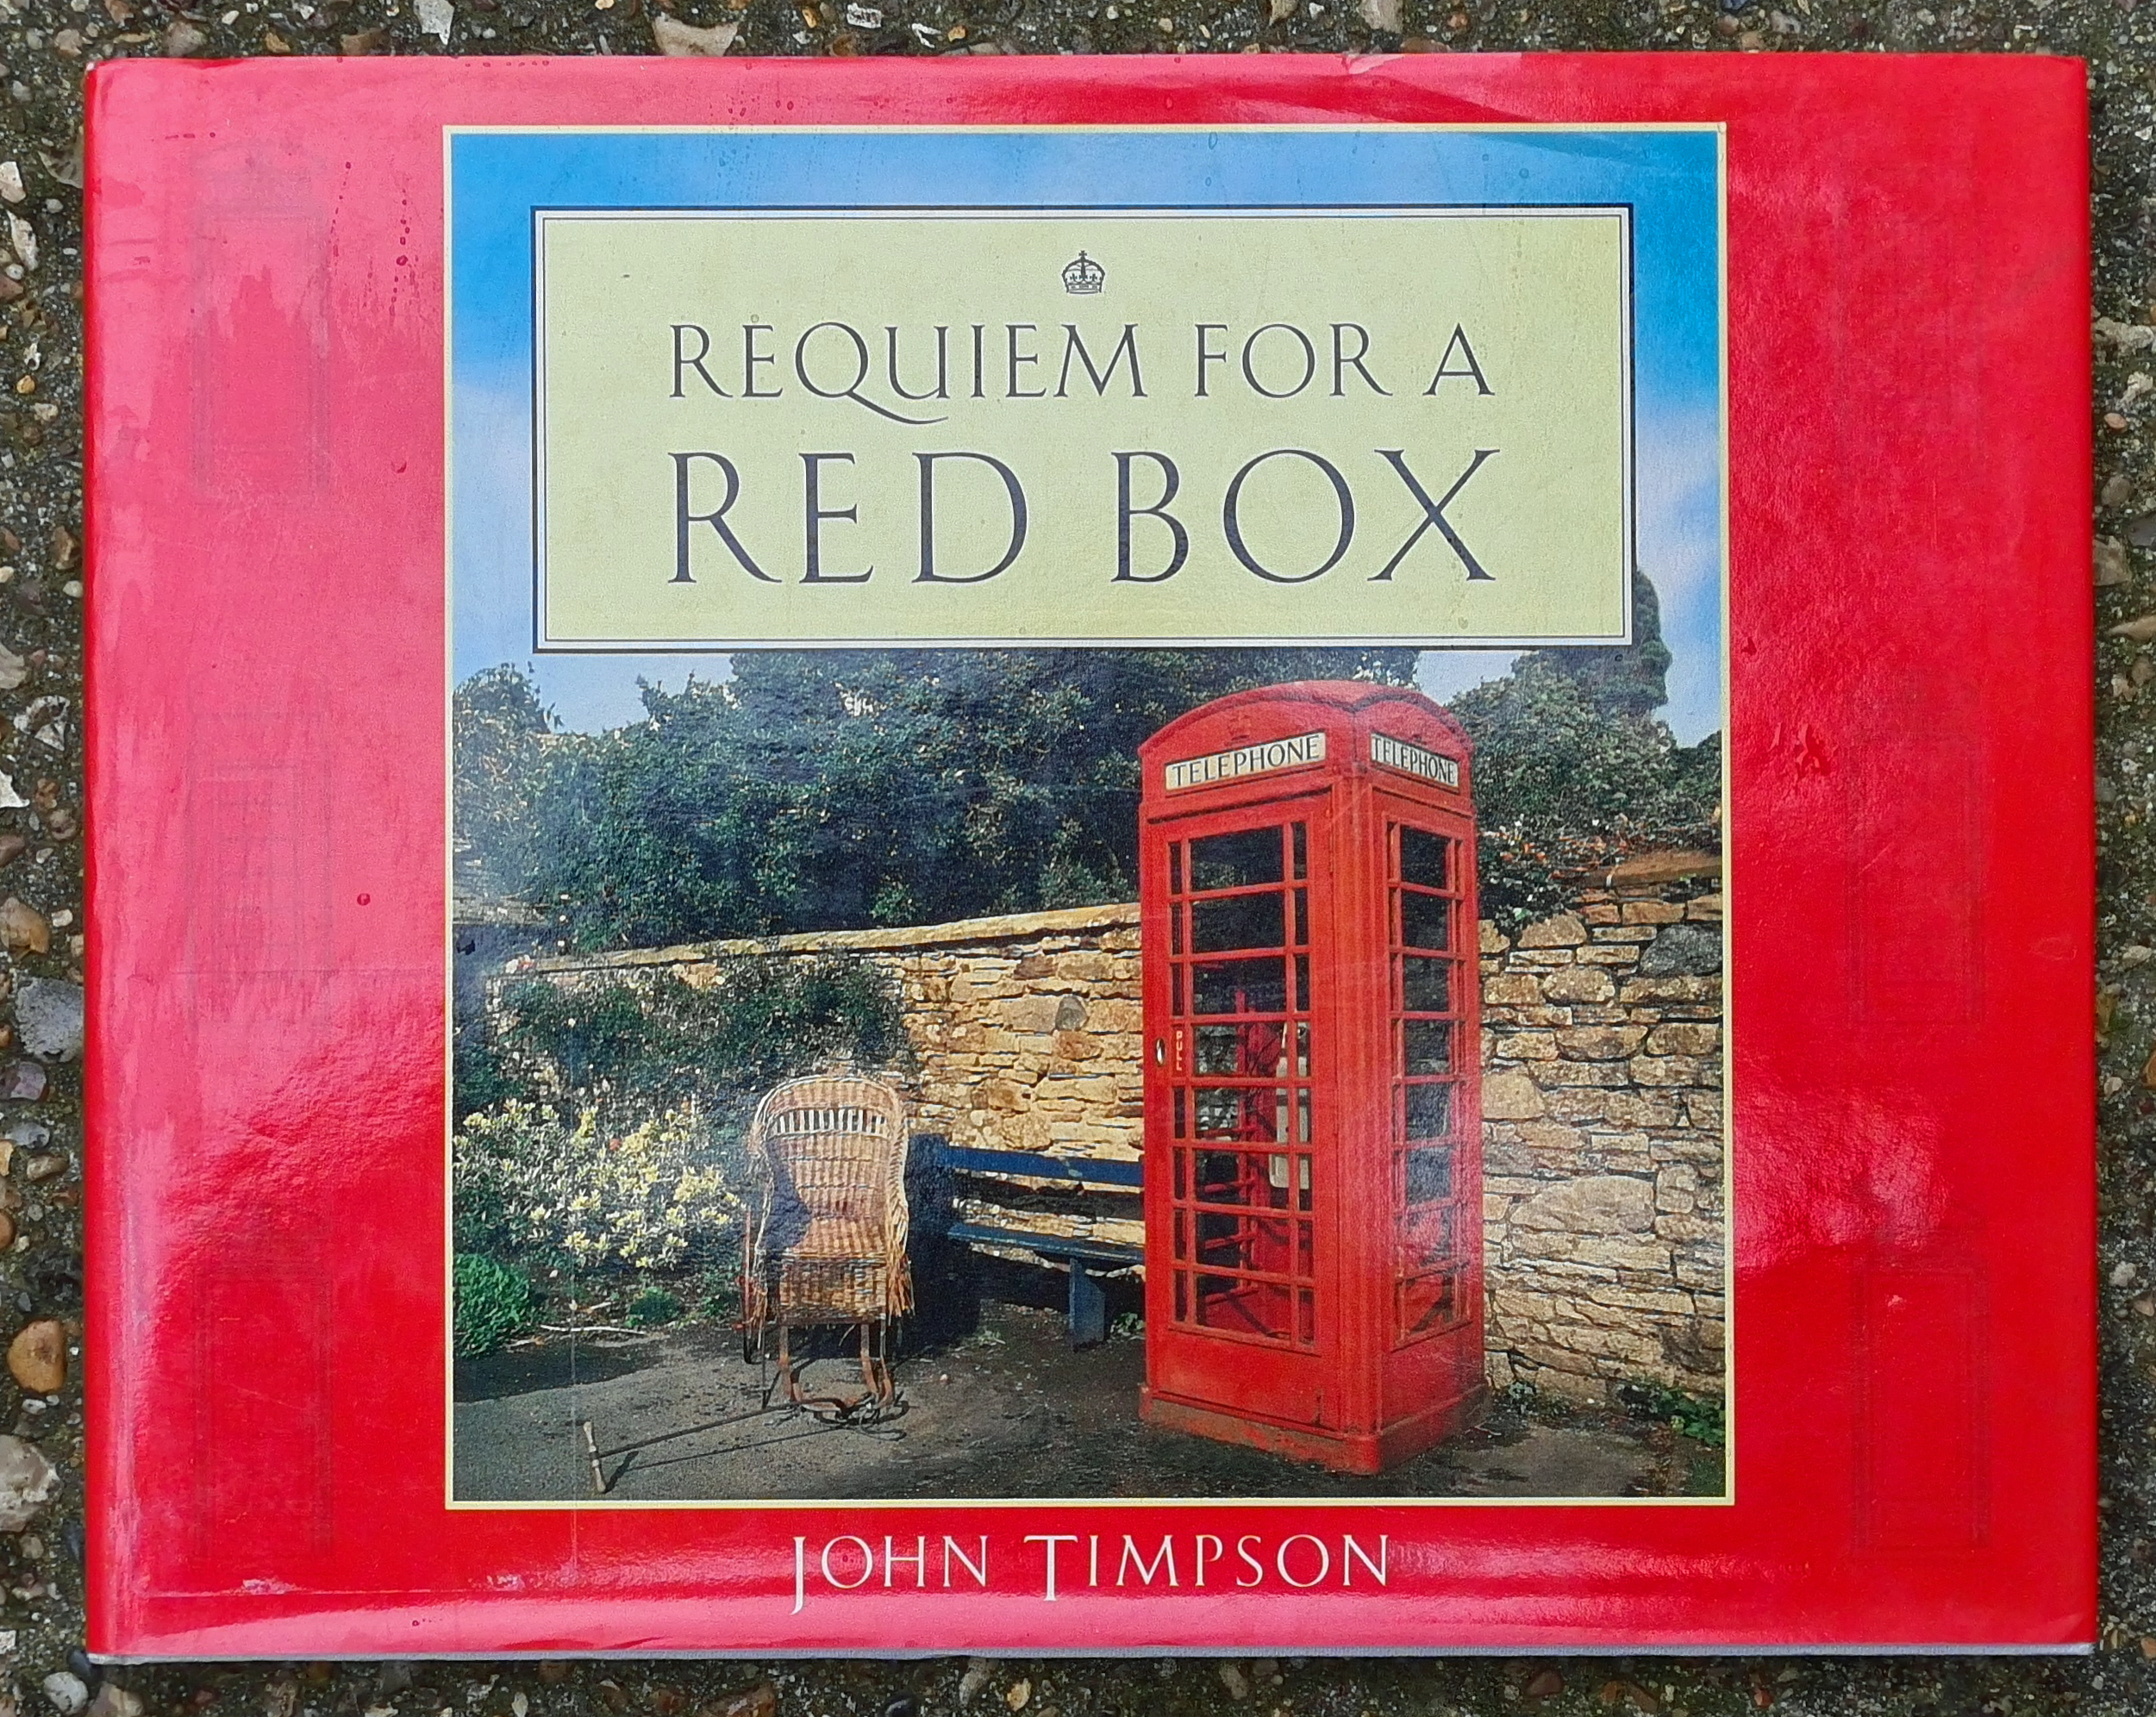 Requim for a Red Box- John Timpson